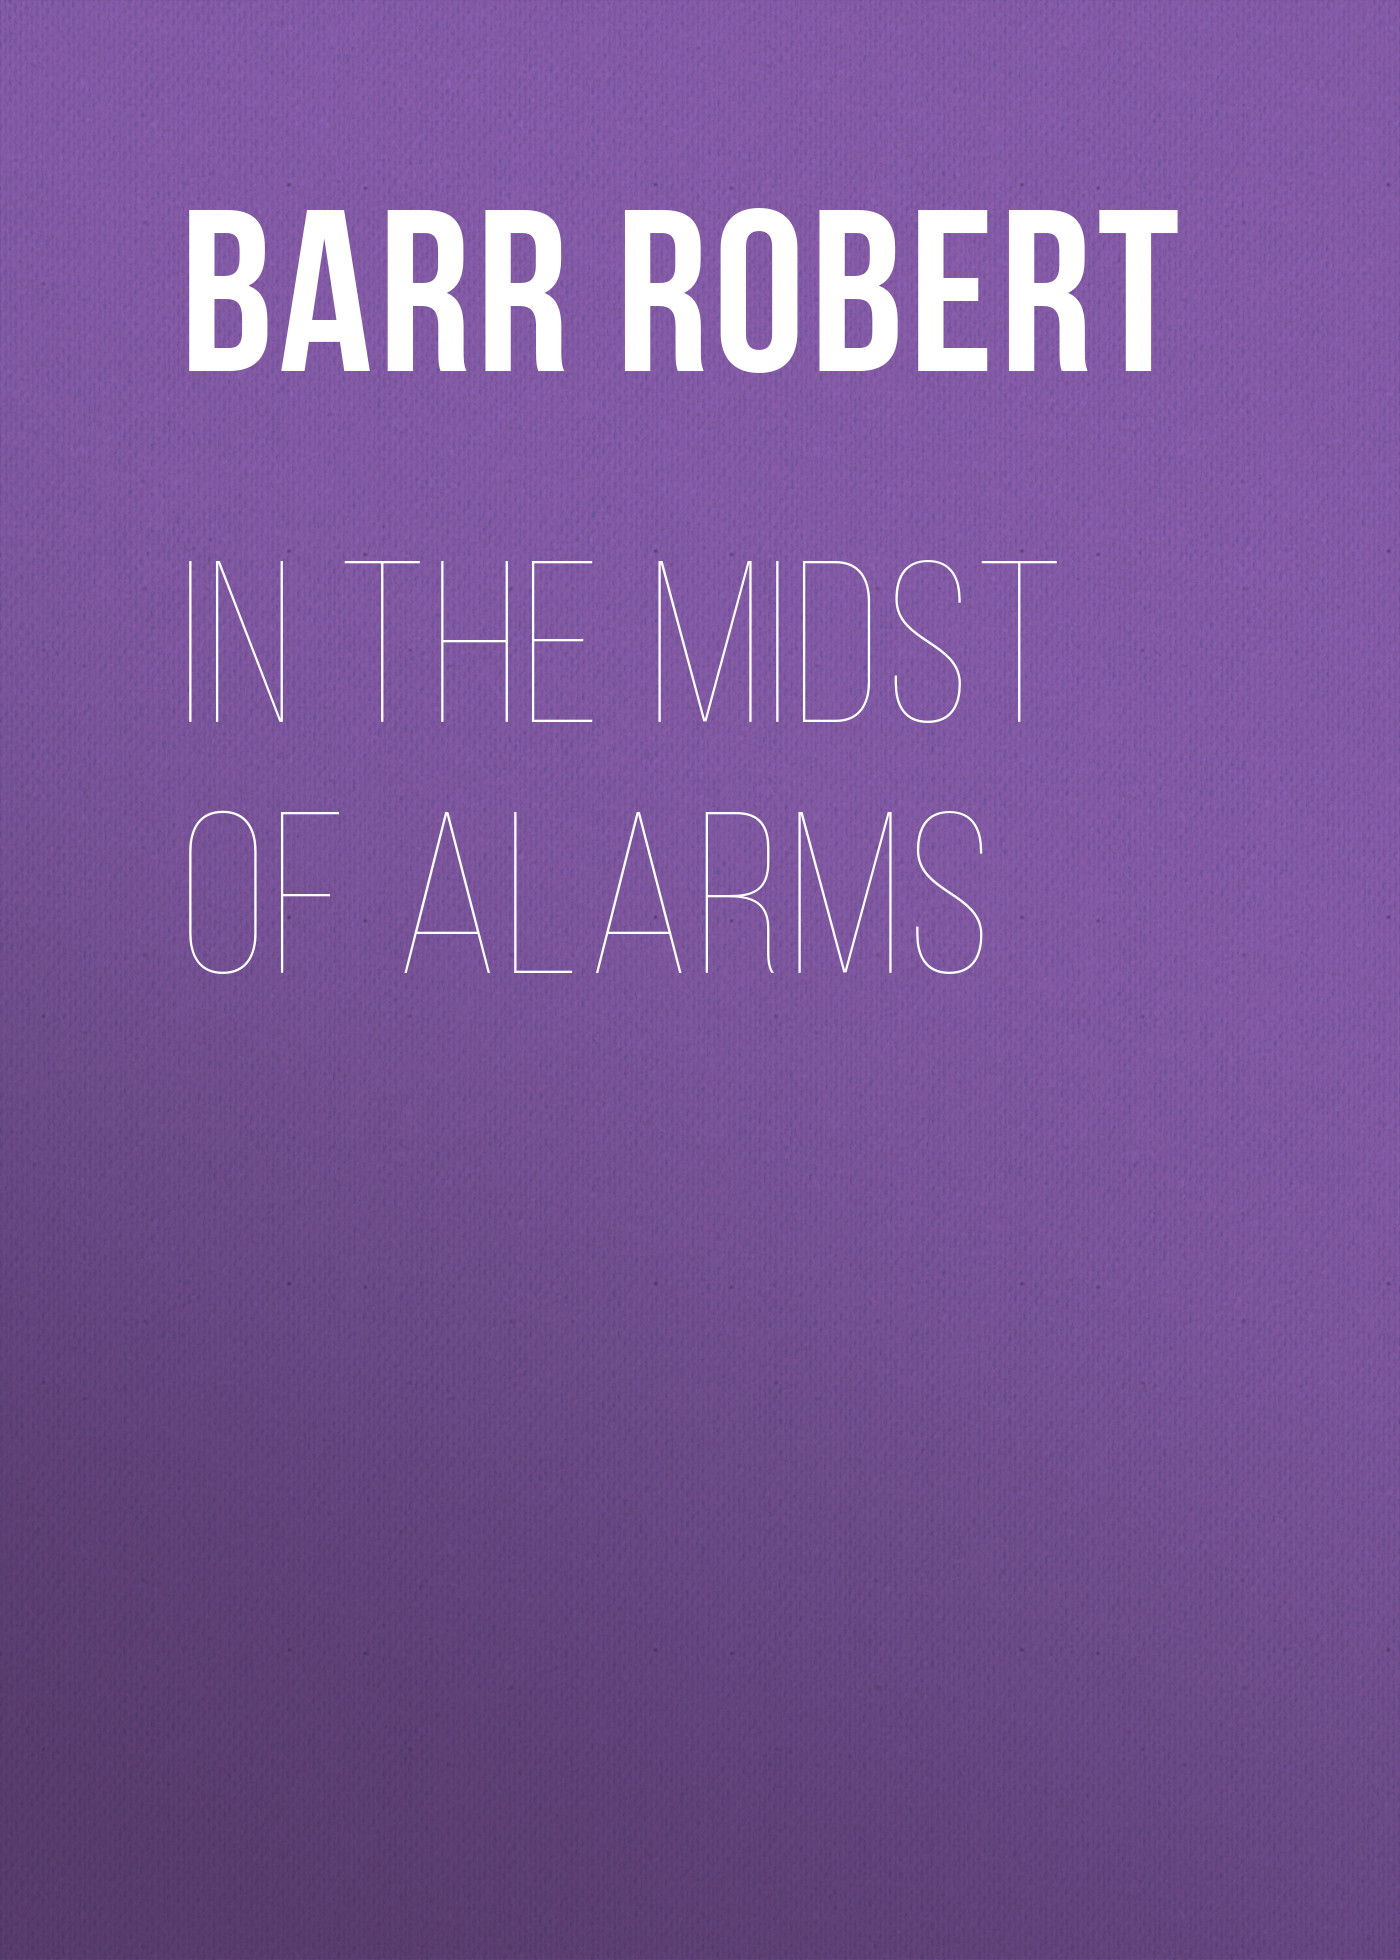 Barr Robert In the Midst of Alarms